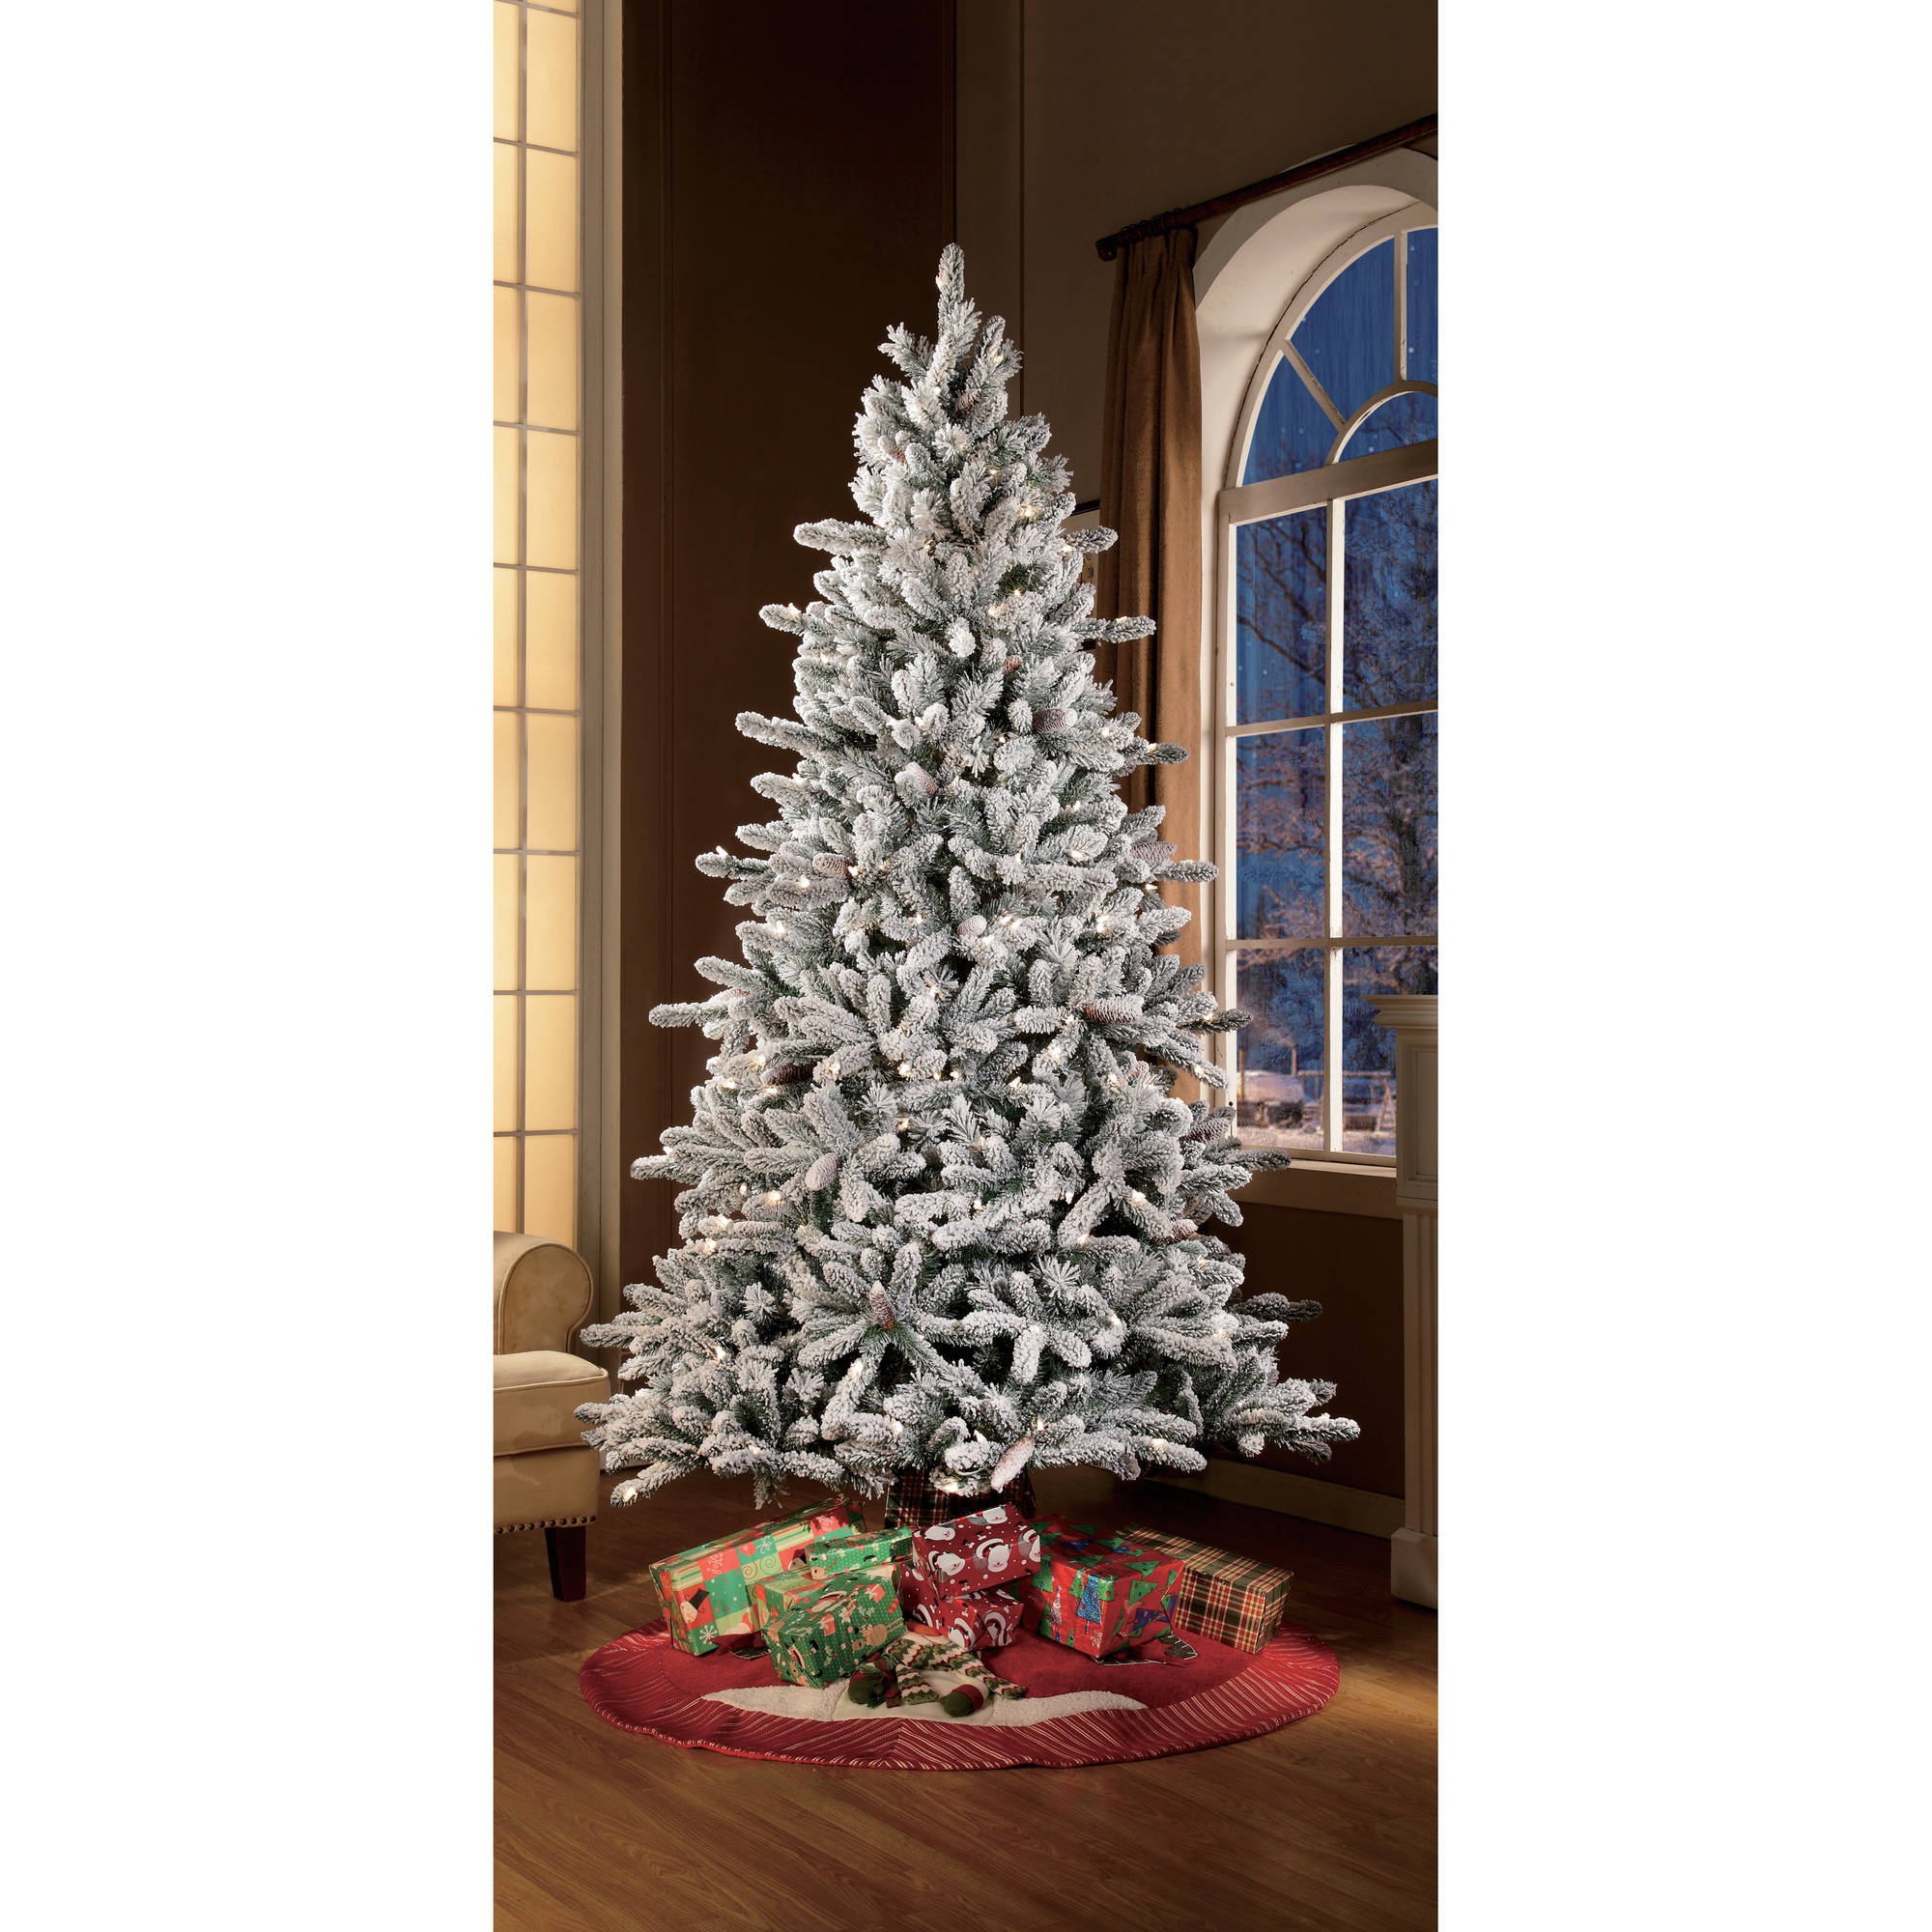 White Christmas Trees - Walmart.com